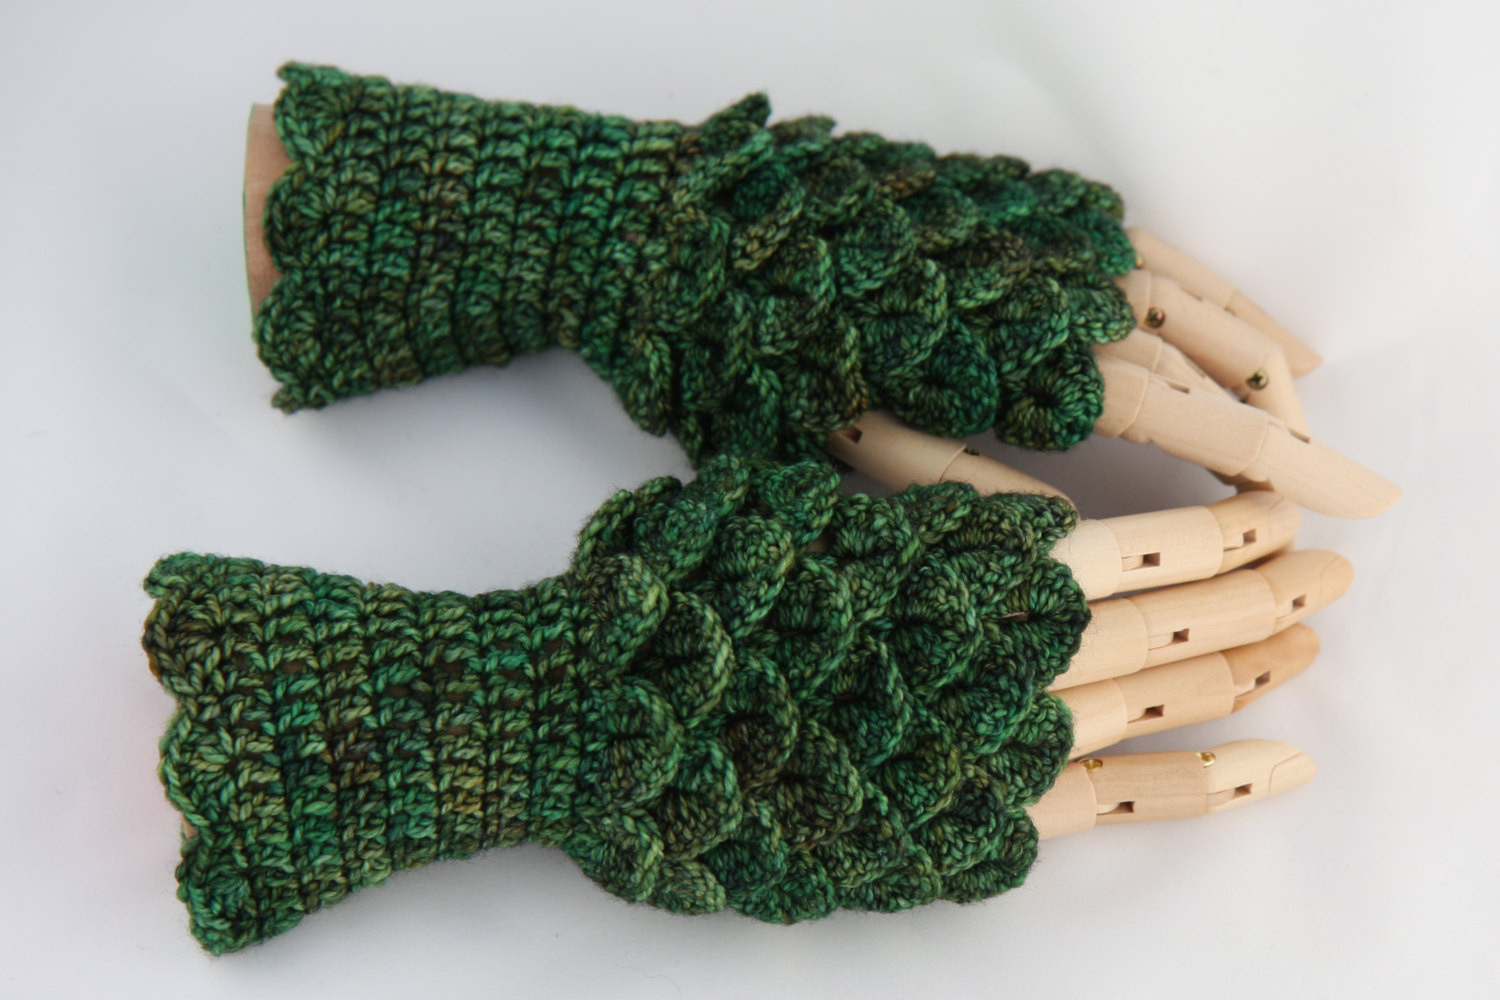 Dragon Scale Crochet Gloves Fresh Crochet Dragonscale Fingerless Gloves Woodland by Of Dragon Scale Crochet Gloves Luxury Crochet Pattern Erebor Dragon Scale Fingerless Gloves Dragon